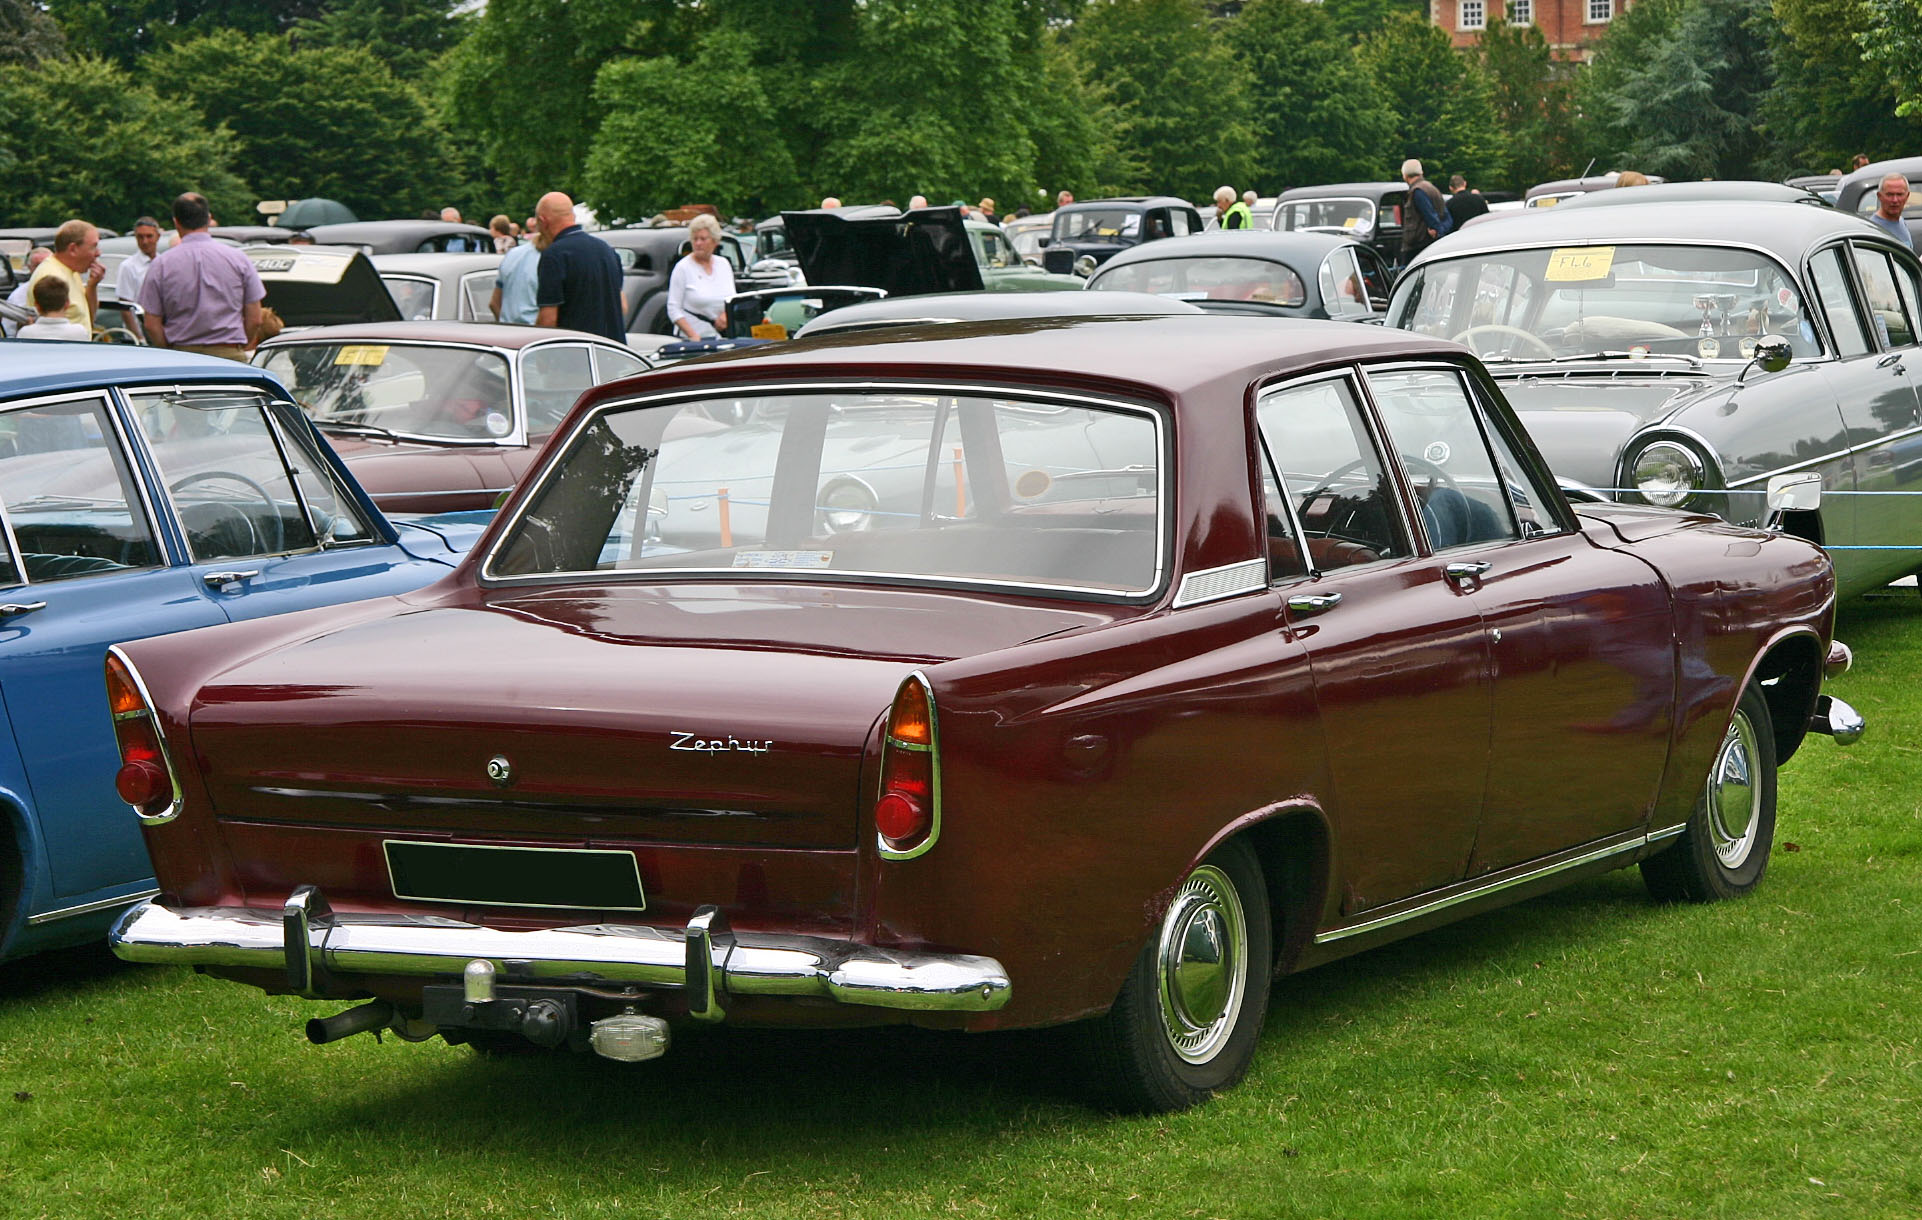 File Ford Zephyr 213E rear on body sections